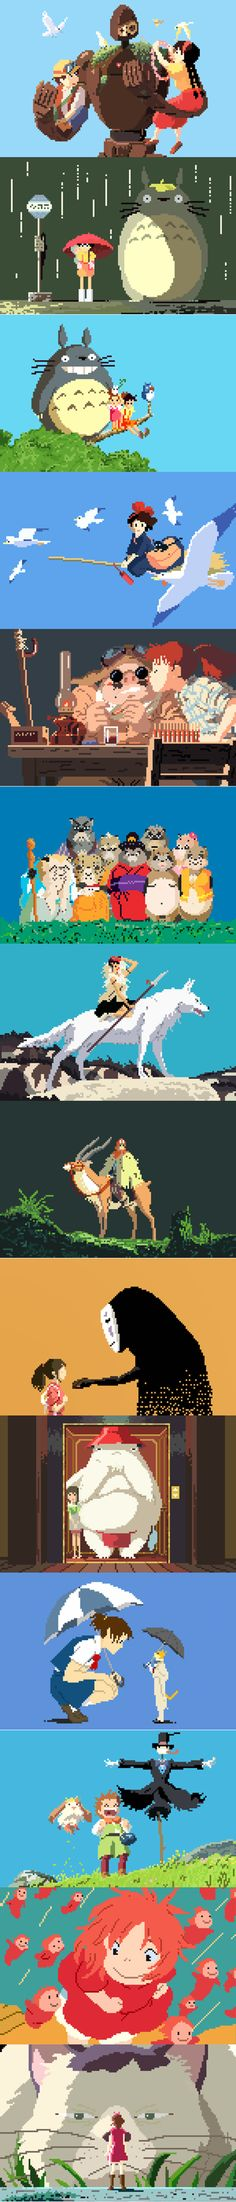 8-bit Ghibli movie art. you know you needed 14 more projects.